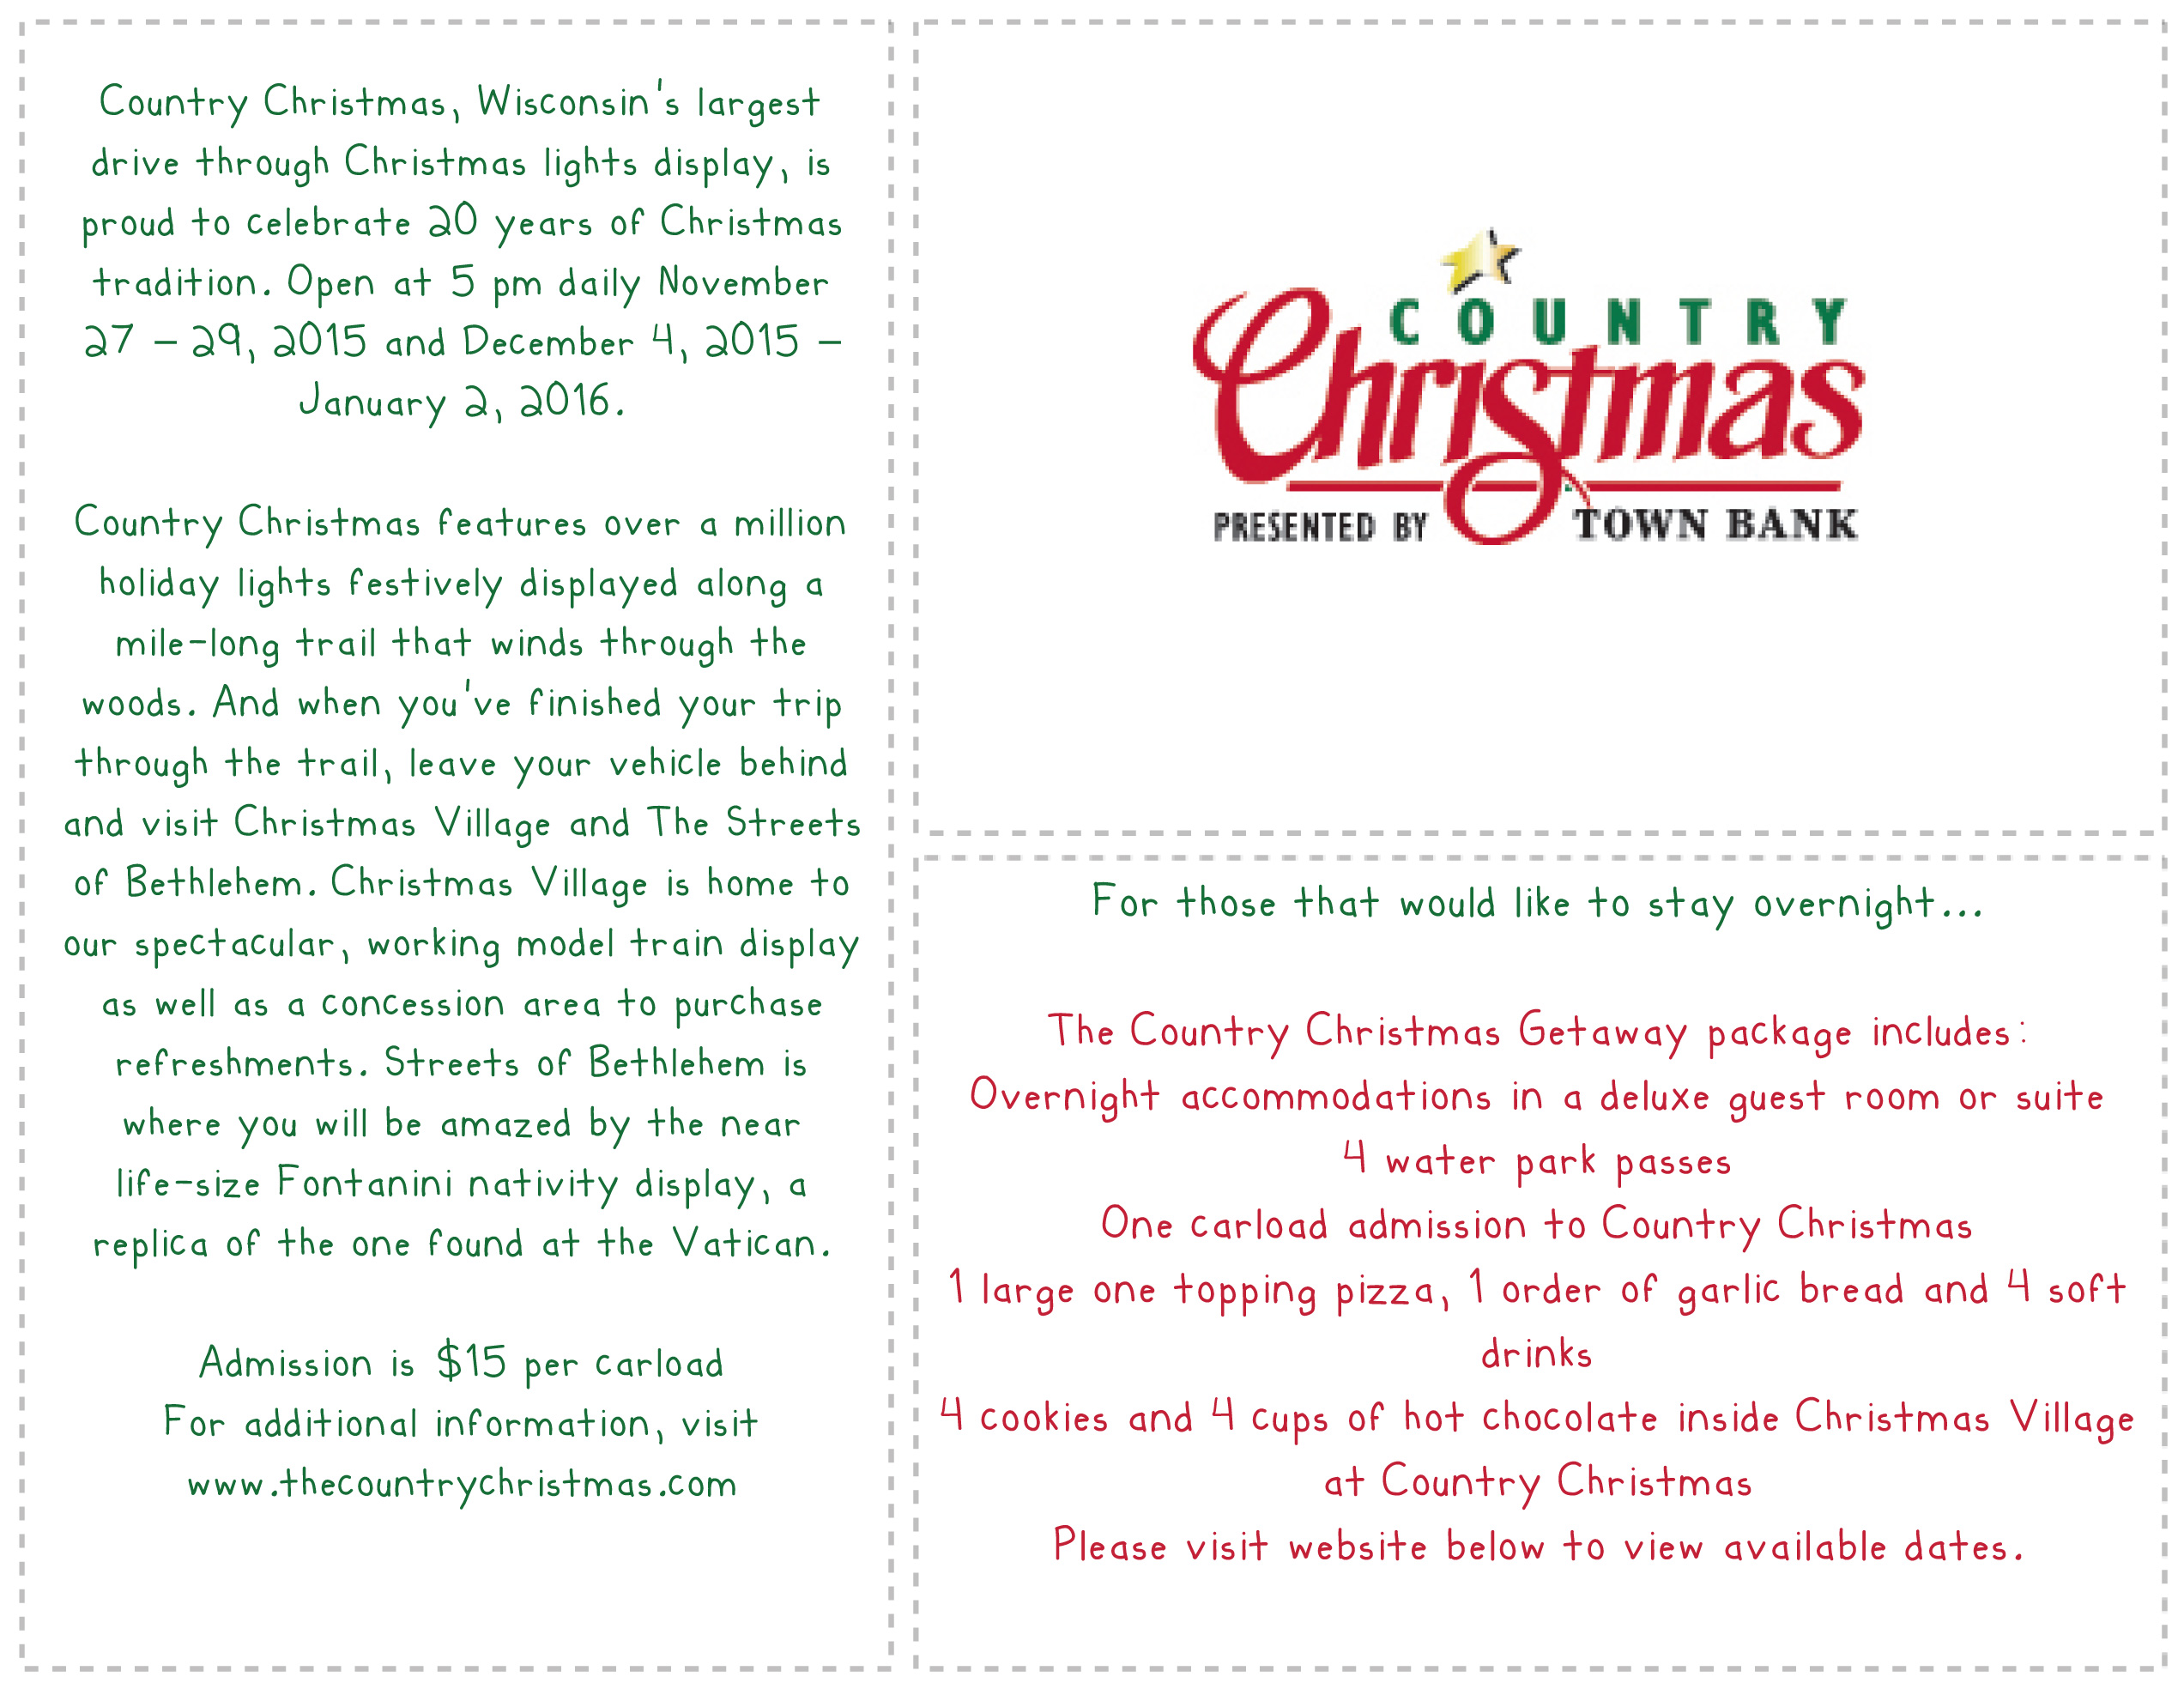 country christmas at the country springs hotel the lake country mom - Country Springs Christmas Lights